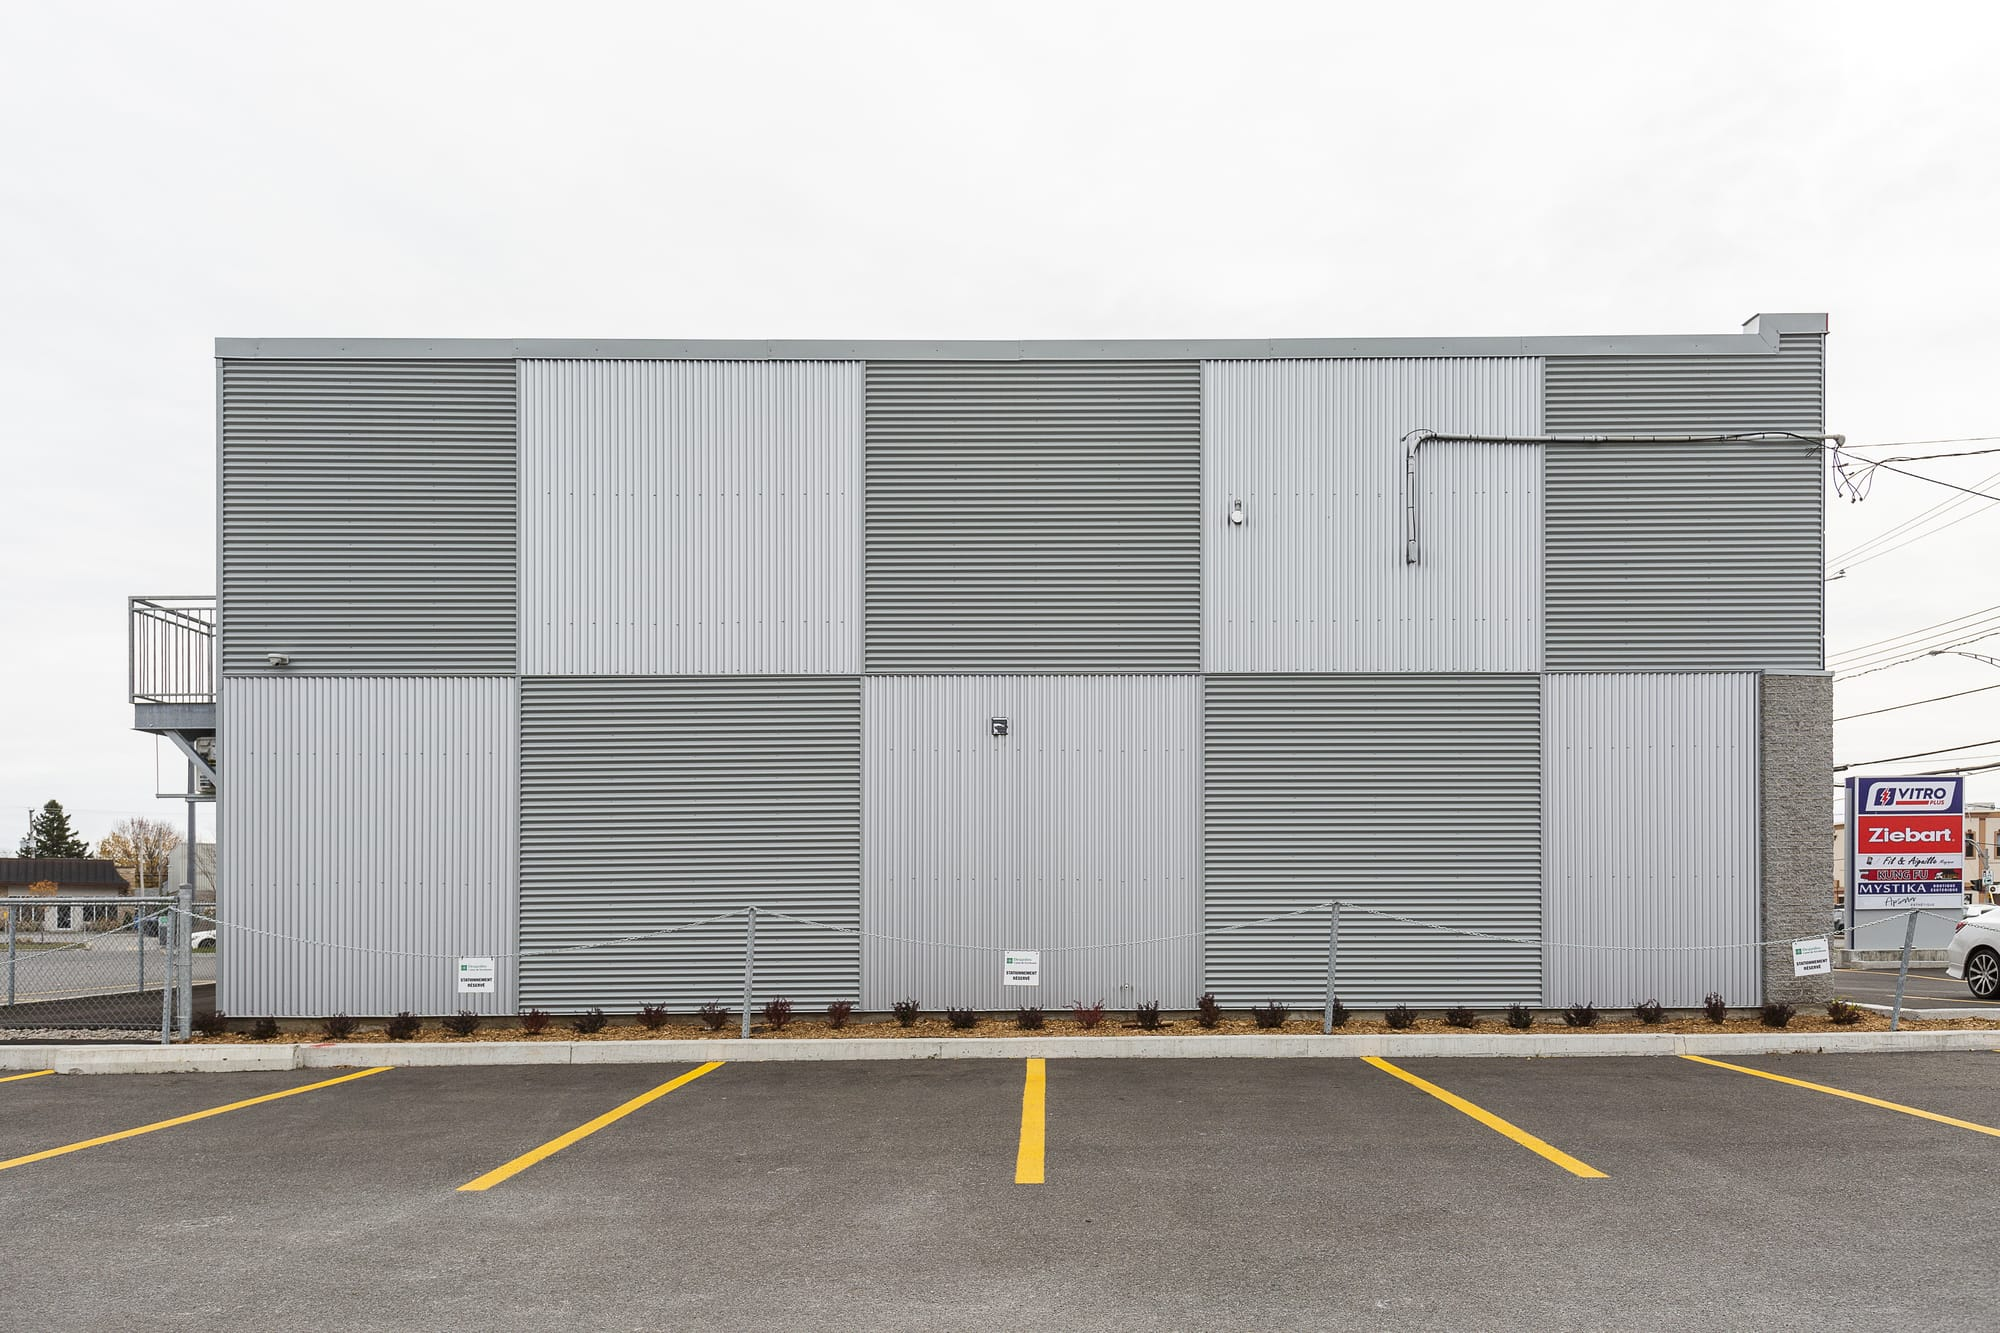 metal cladding commercial building - rear view